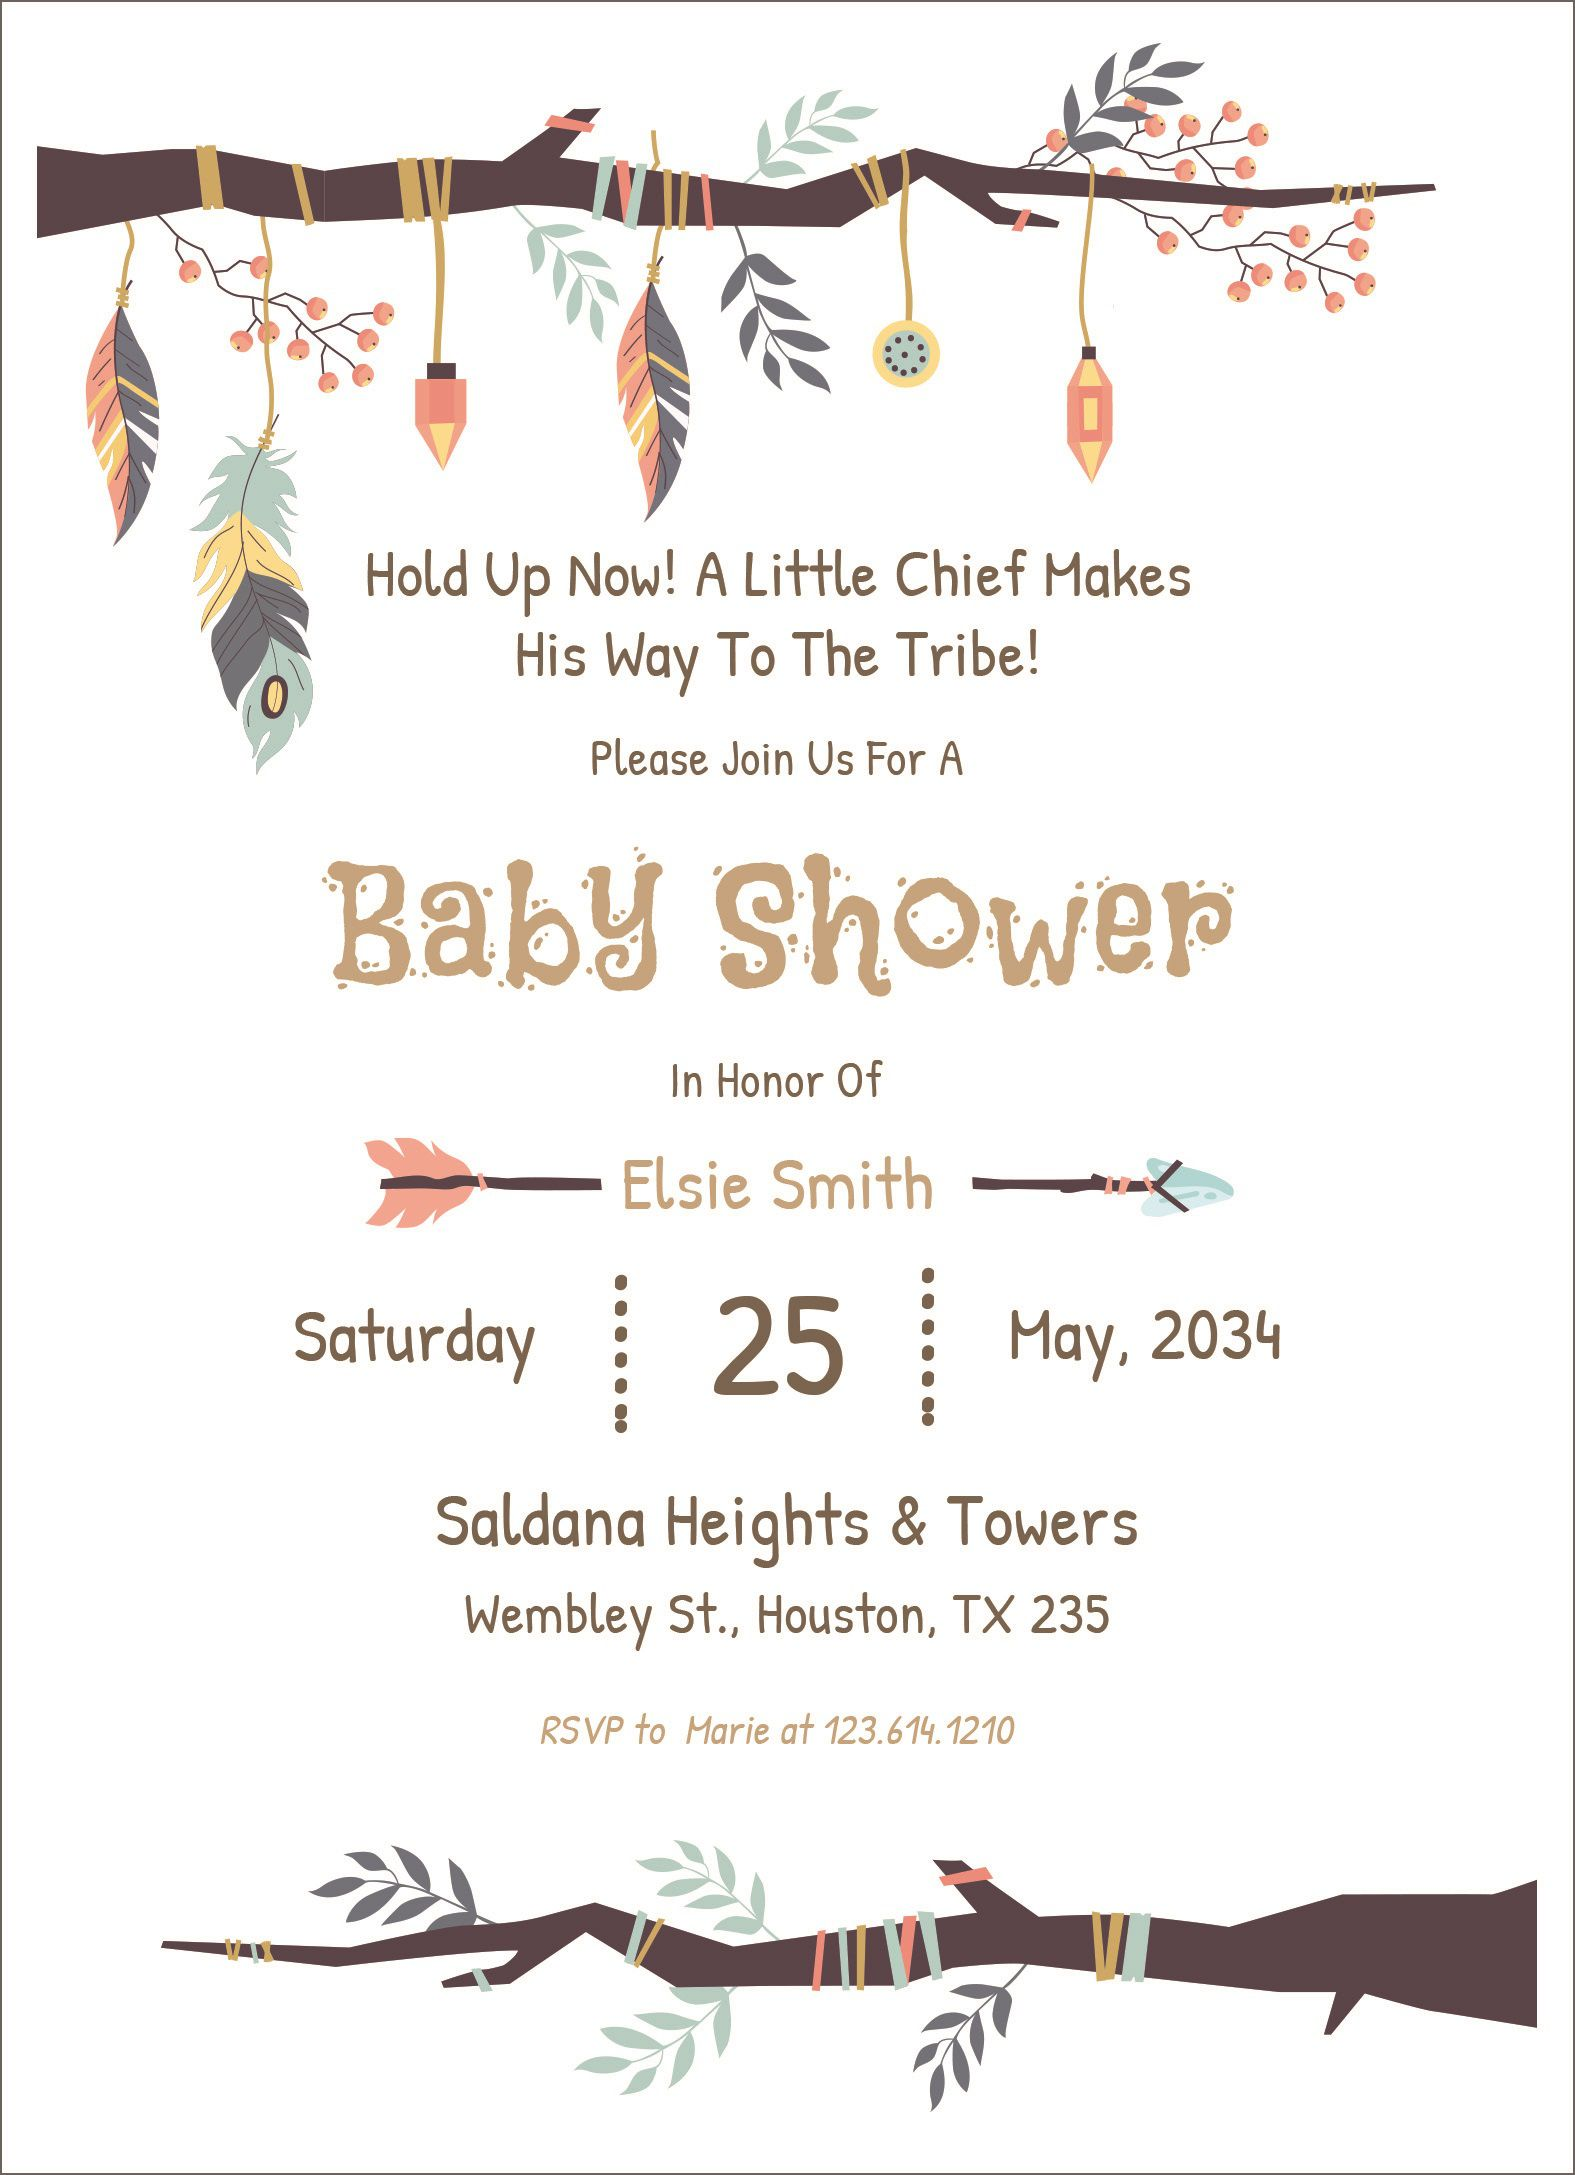 003 Staggering Baby Shower Announcement Template Picture  Templates Invitation India Indian Free With PhotoFull